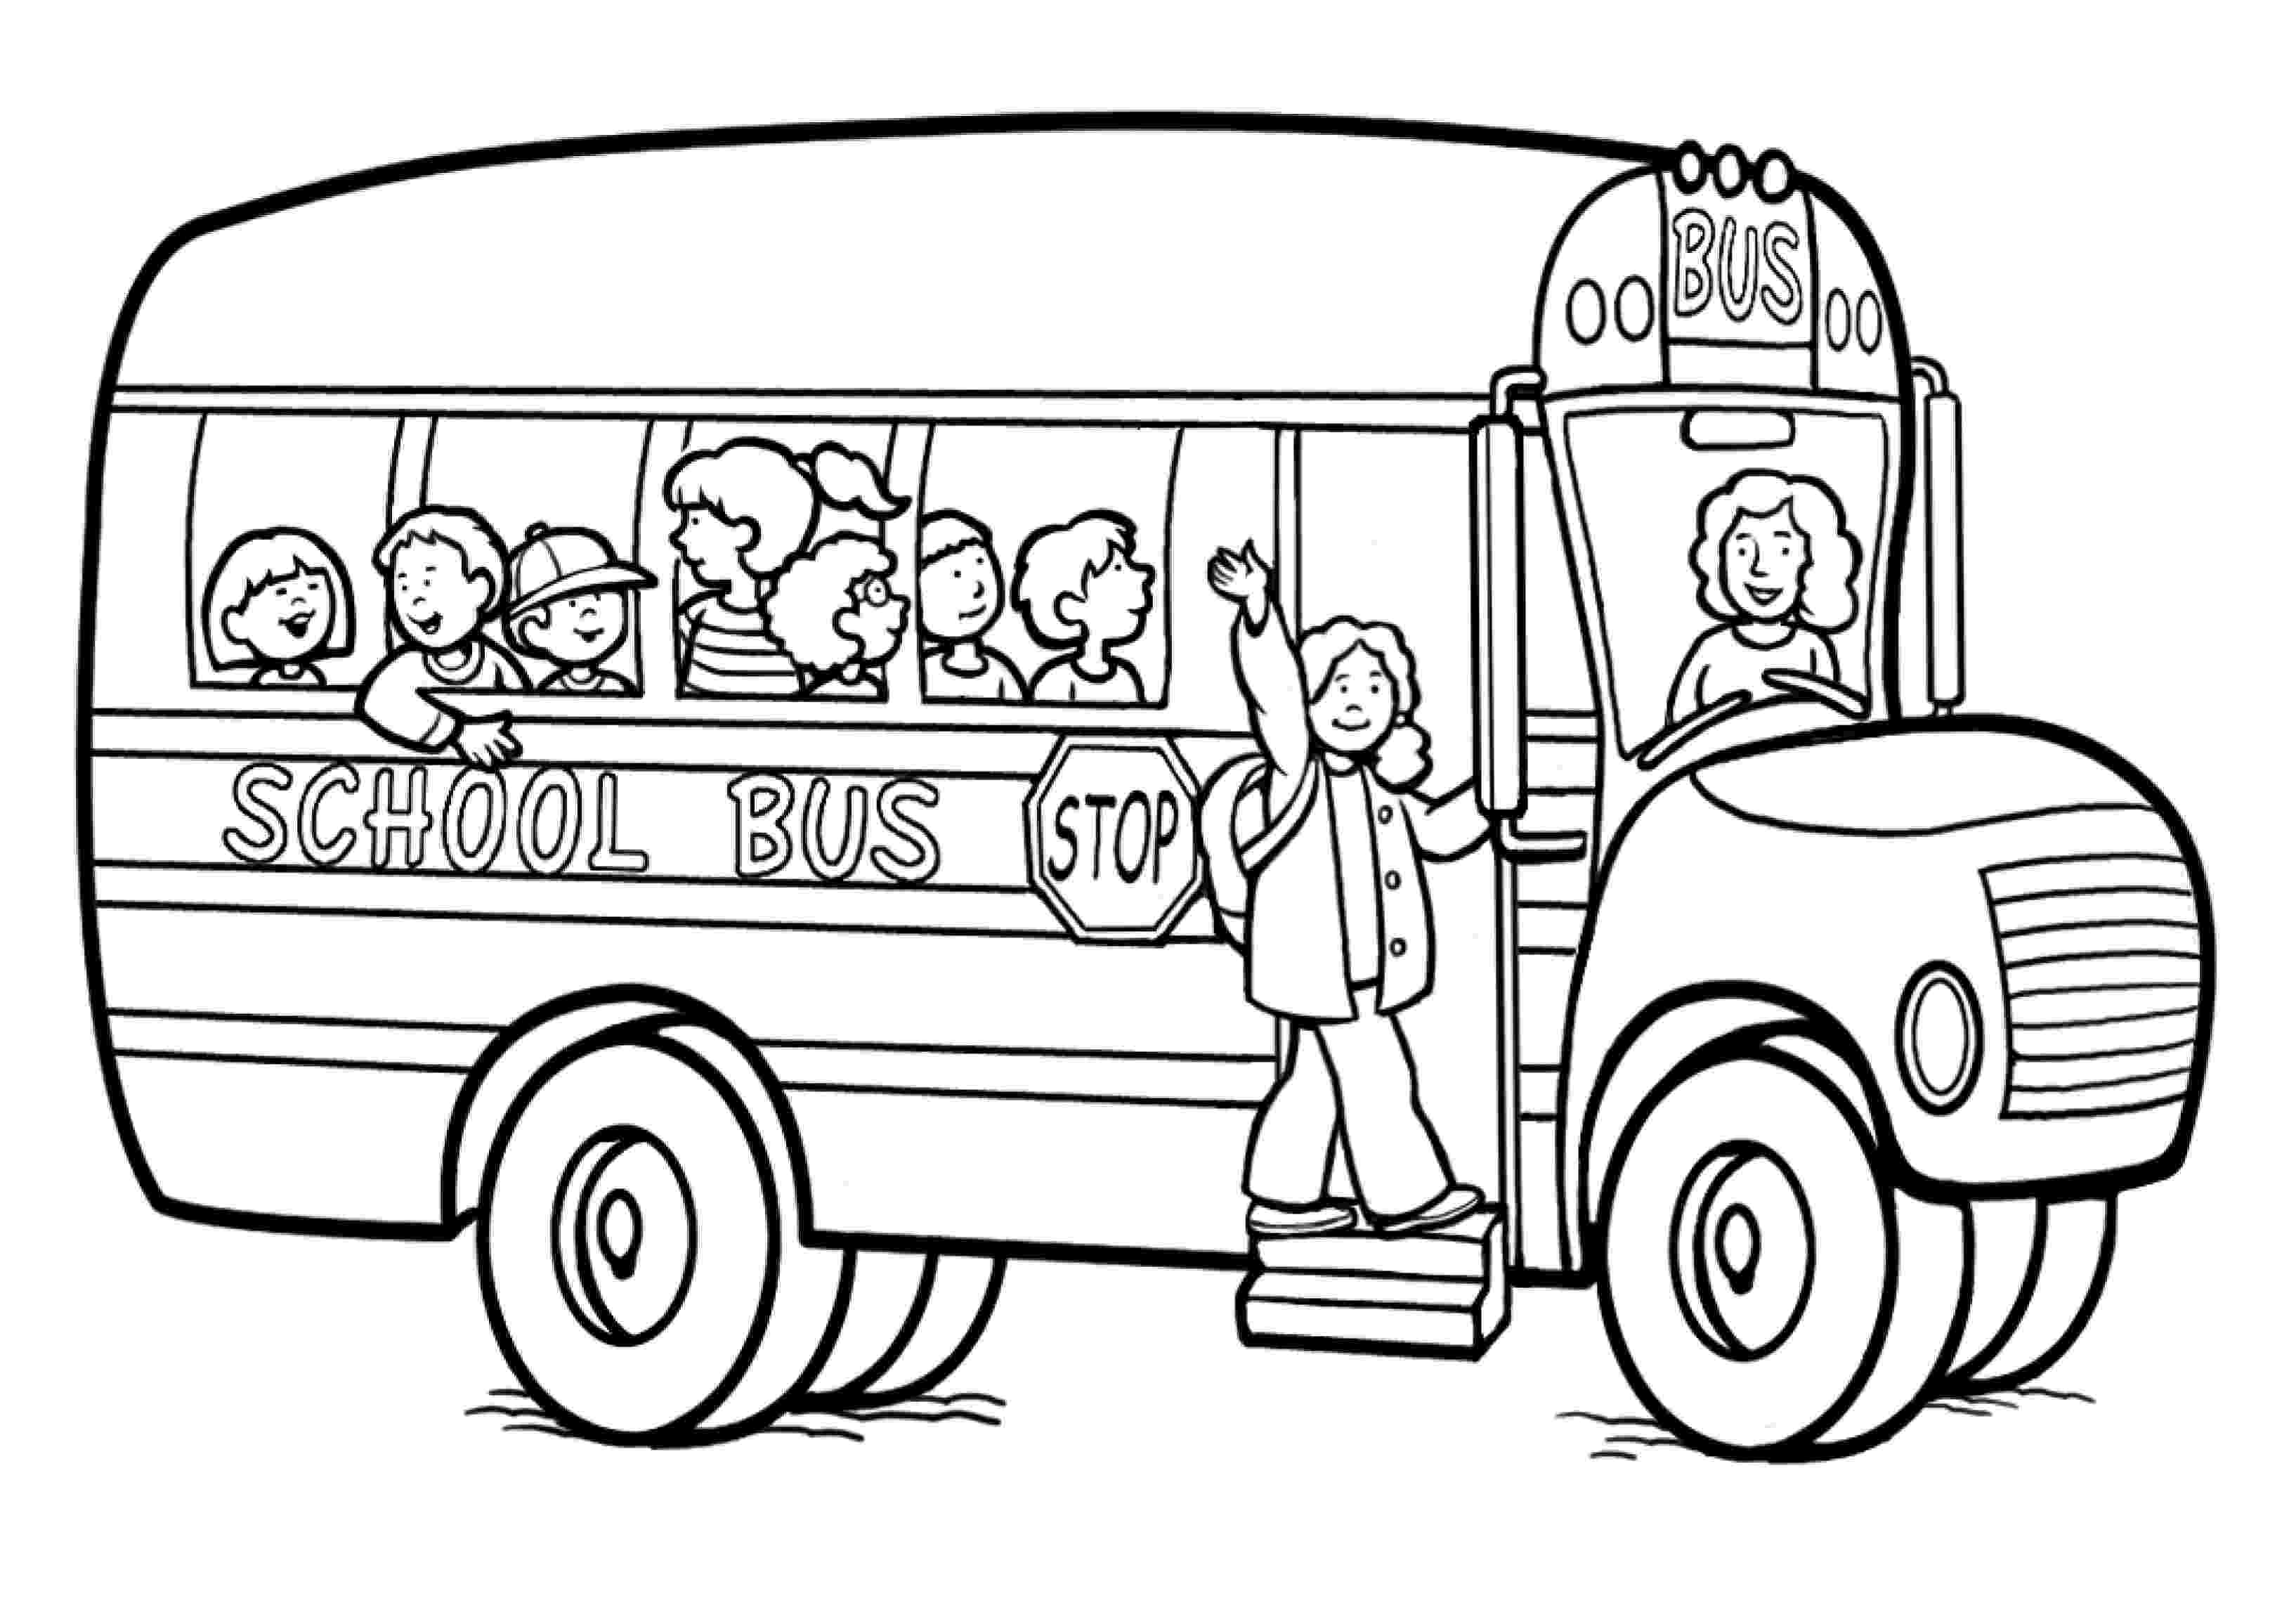 bus coloring pages printable school bus coloring page for kids cool2bkids coloring pages bus